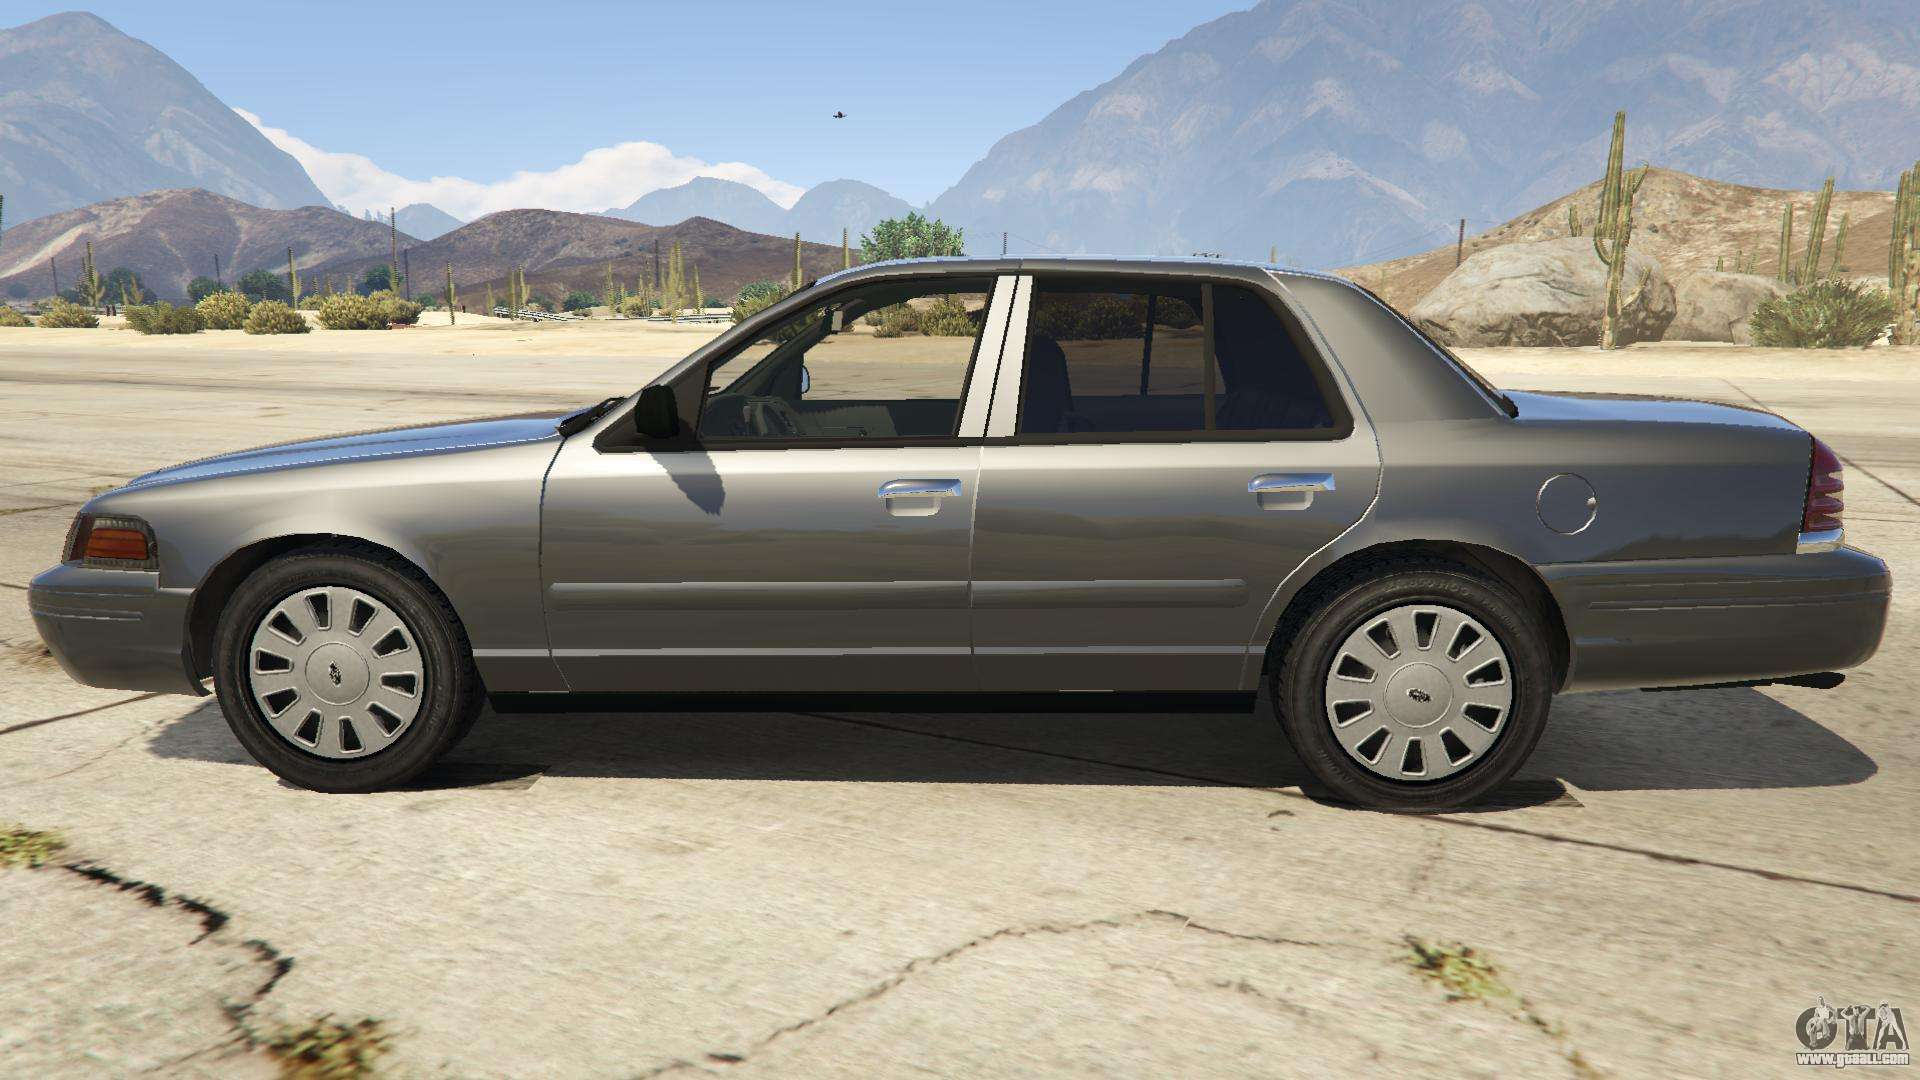 Ford Crown Victoria Detective for GTA 5 Gta 4 Pc Cars